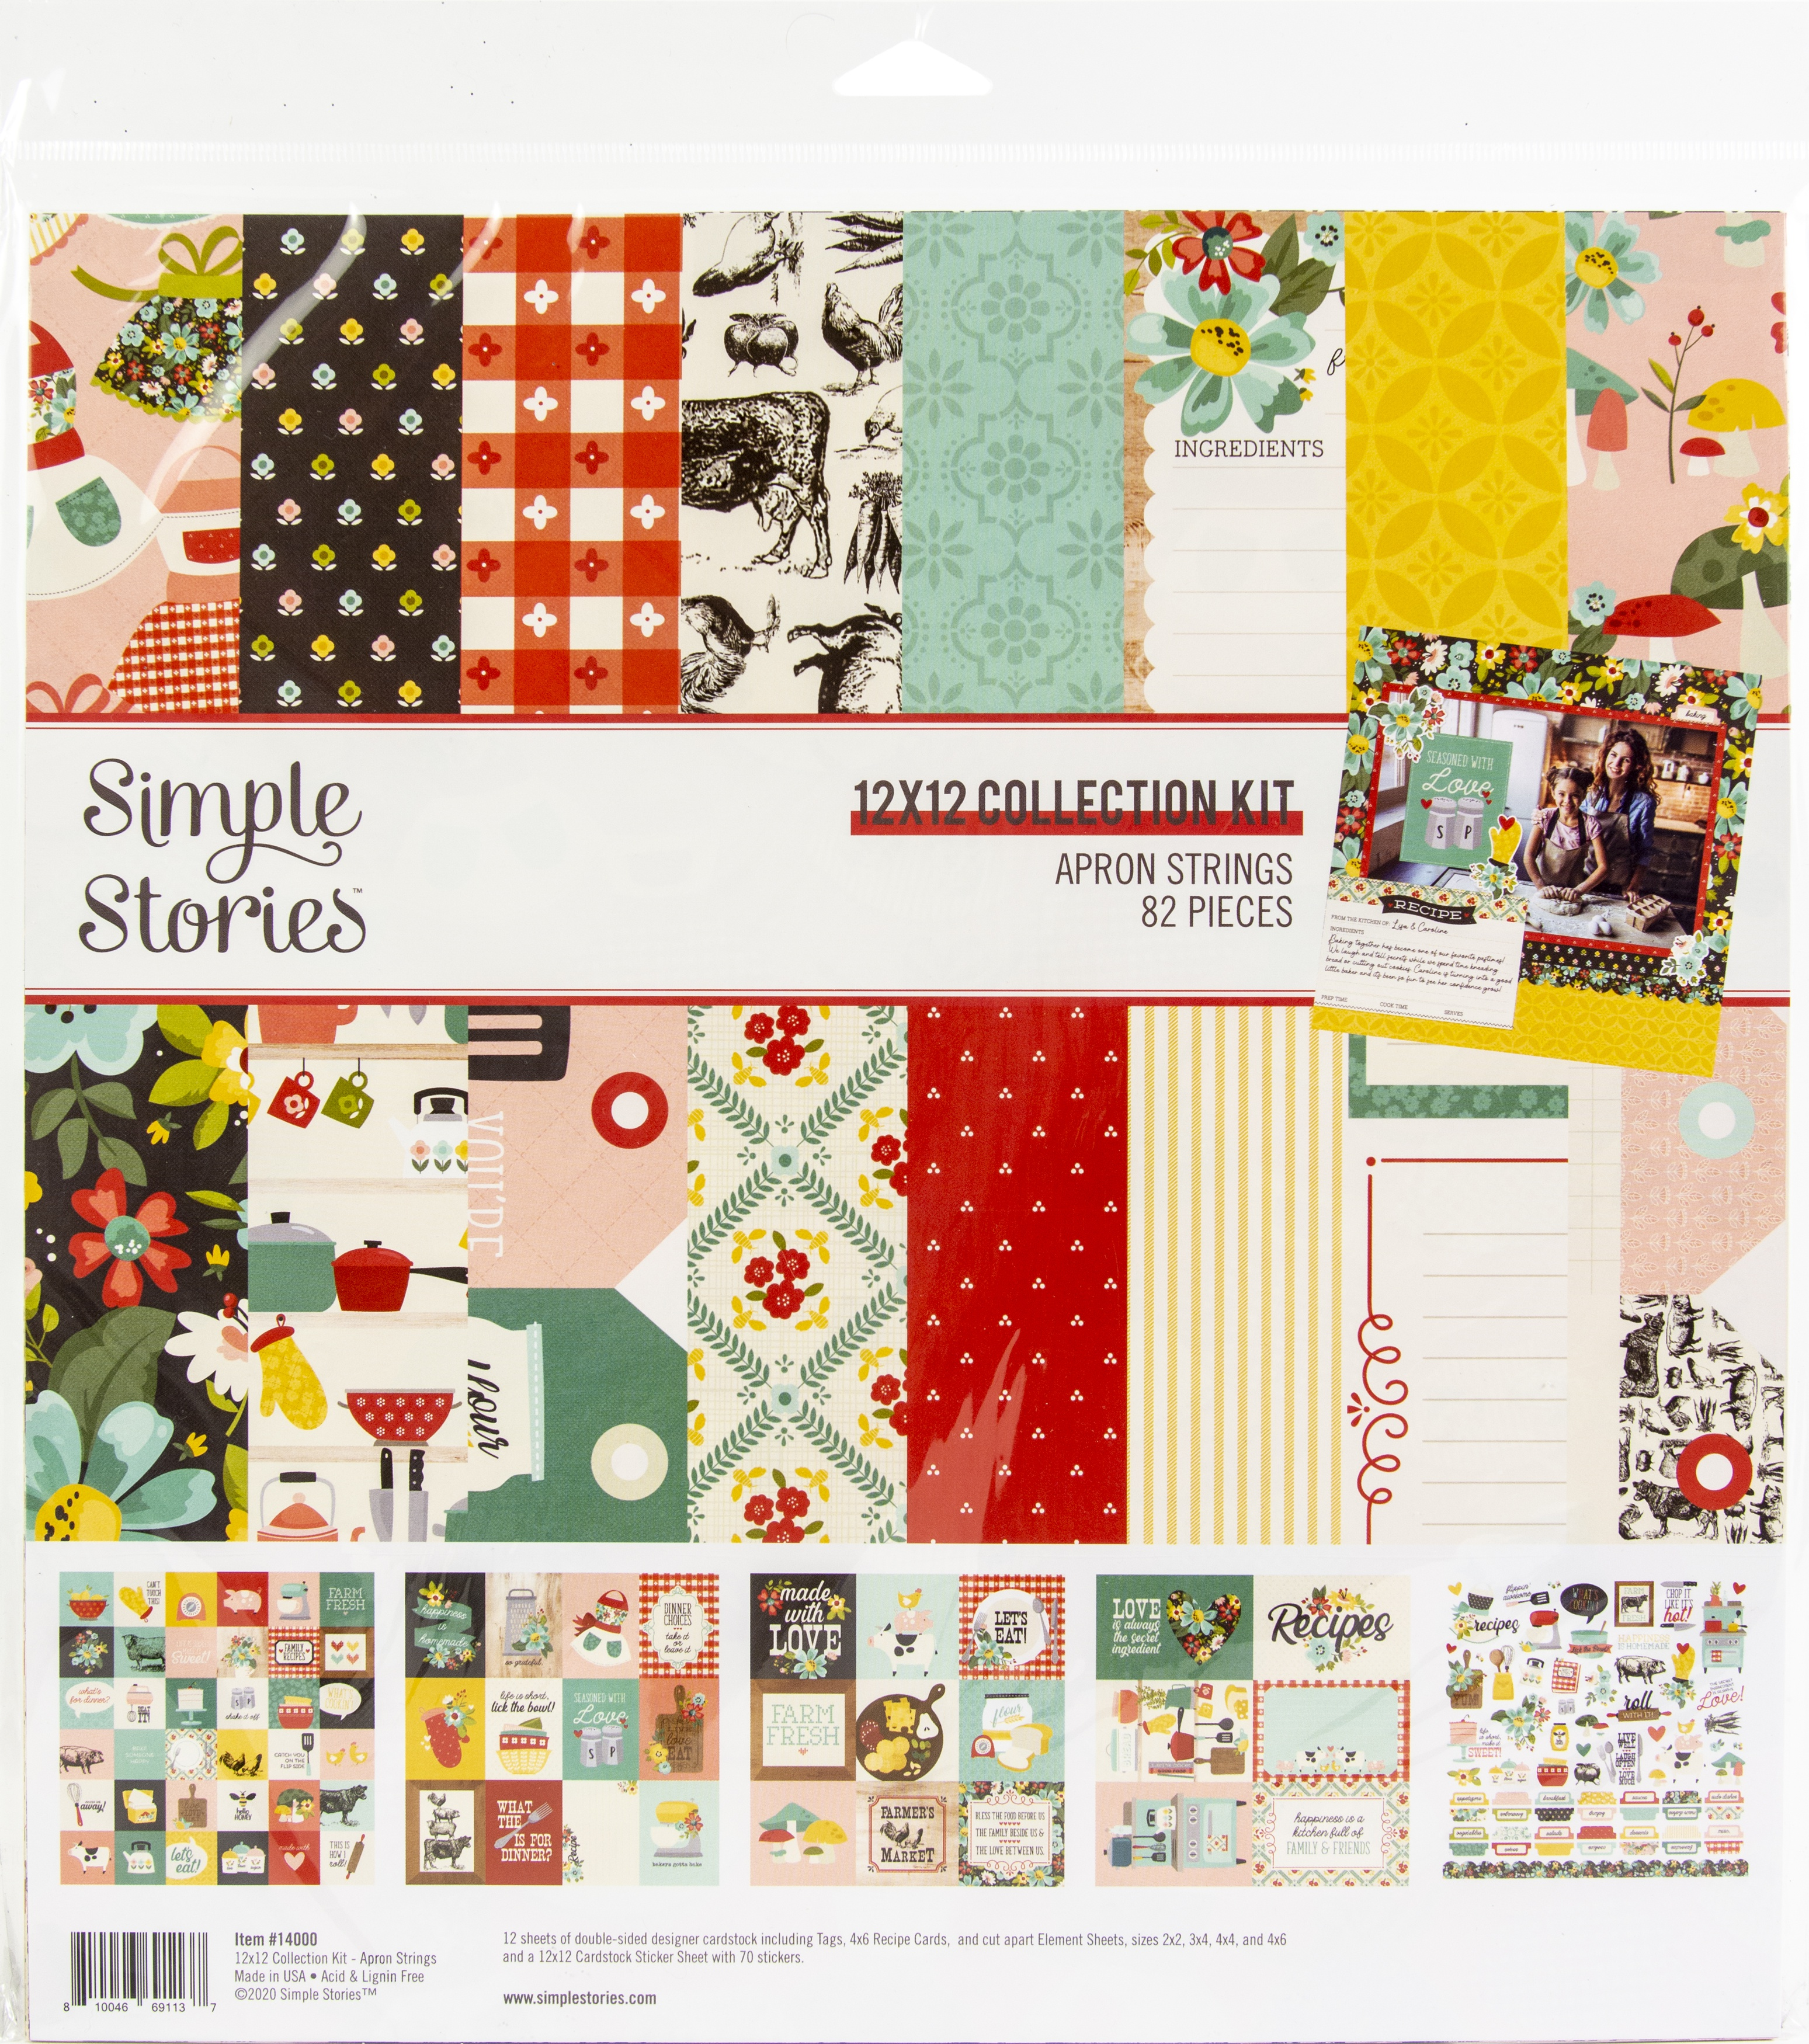 Simple Stories Collection Kit 12X12-Apron Strings